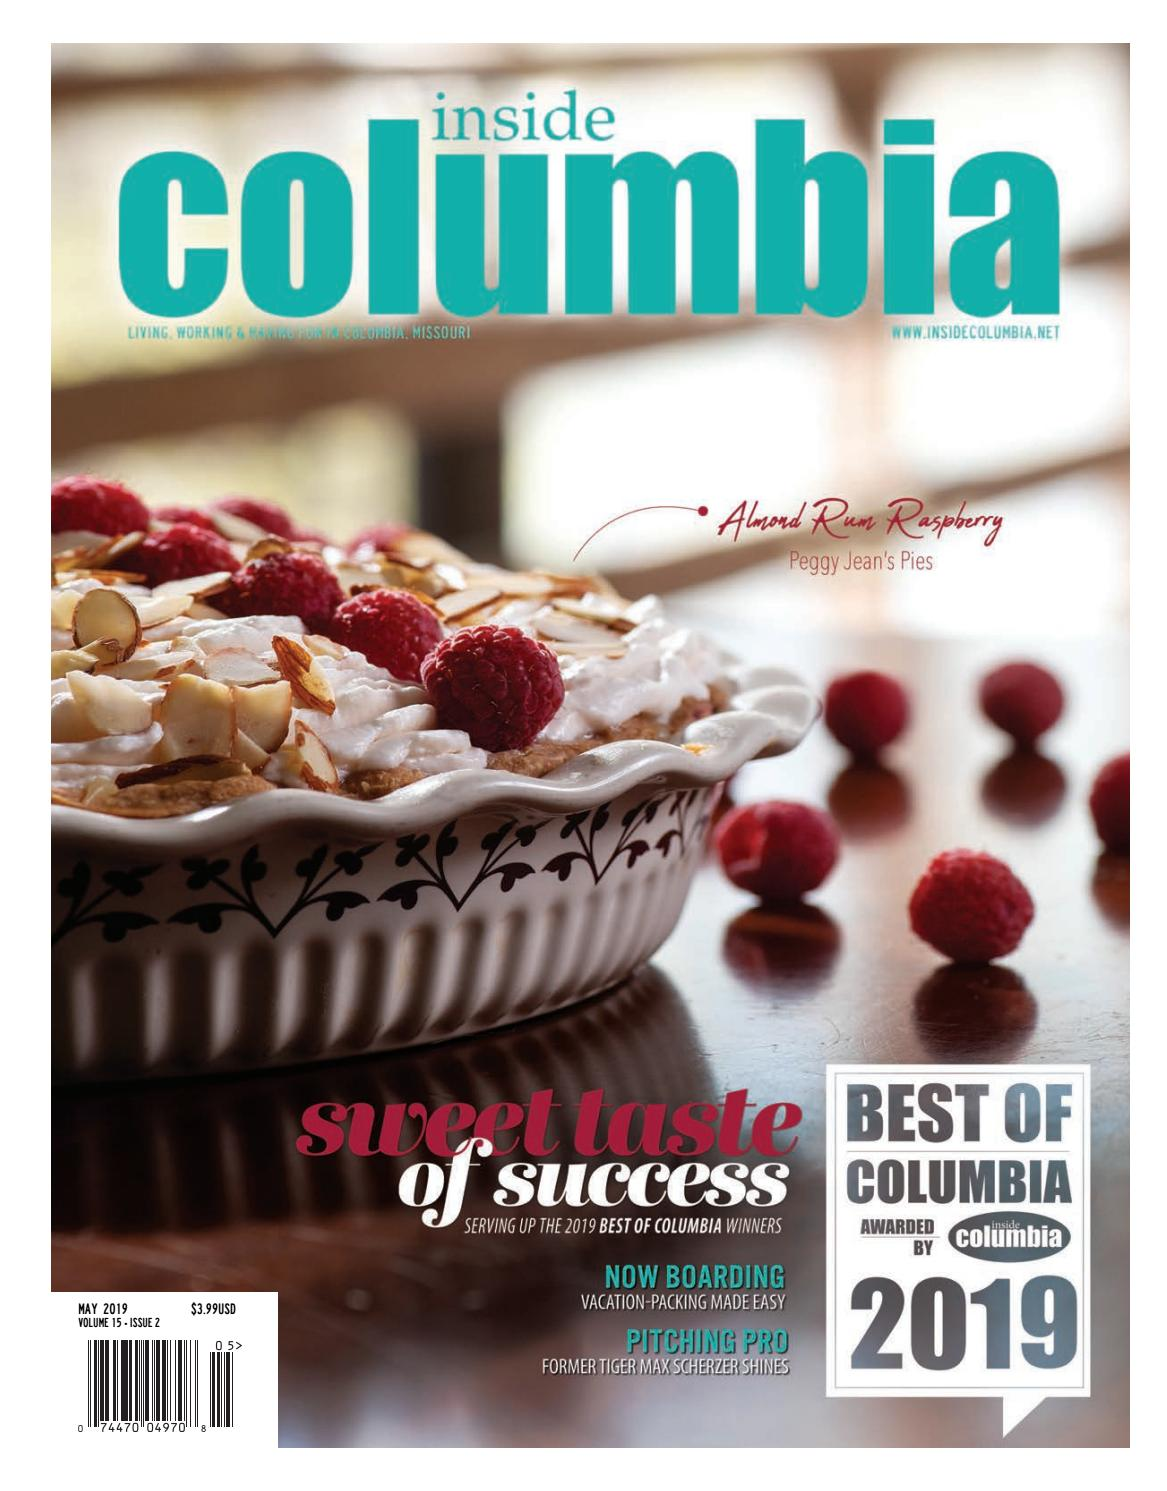 cf27b34a304d4 Inside Columbia Magazine May 2019 by Inside Columbia Magazine - issuu